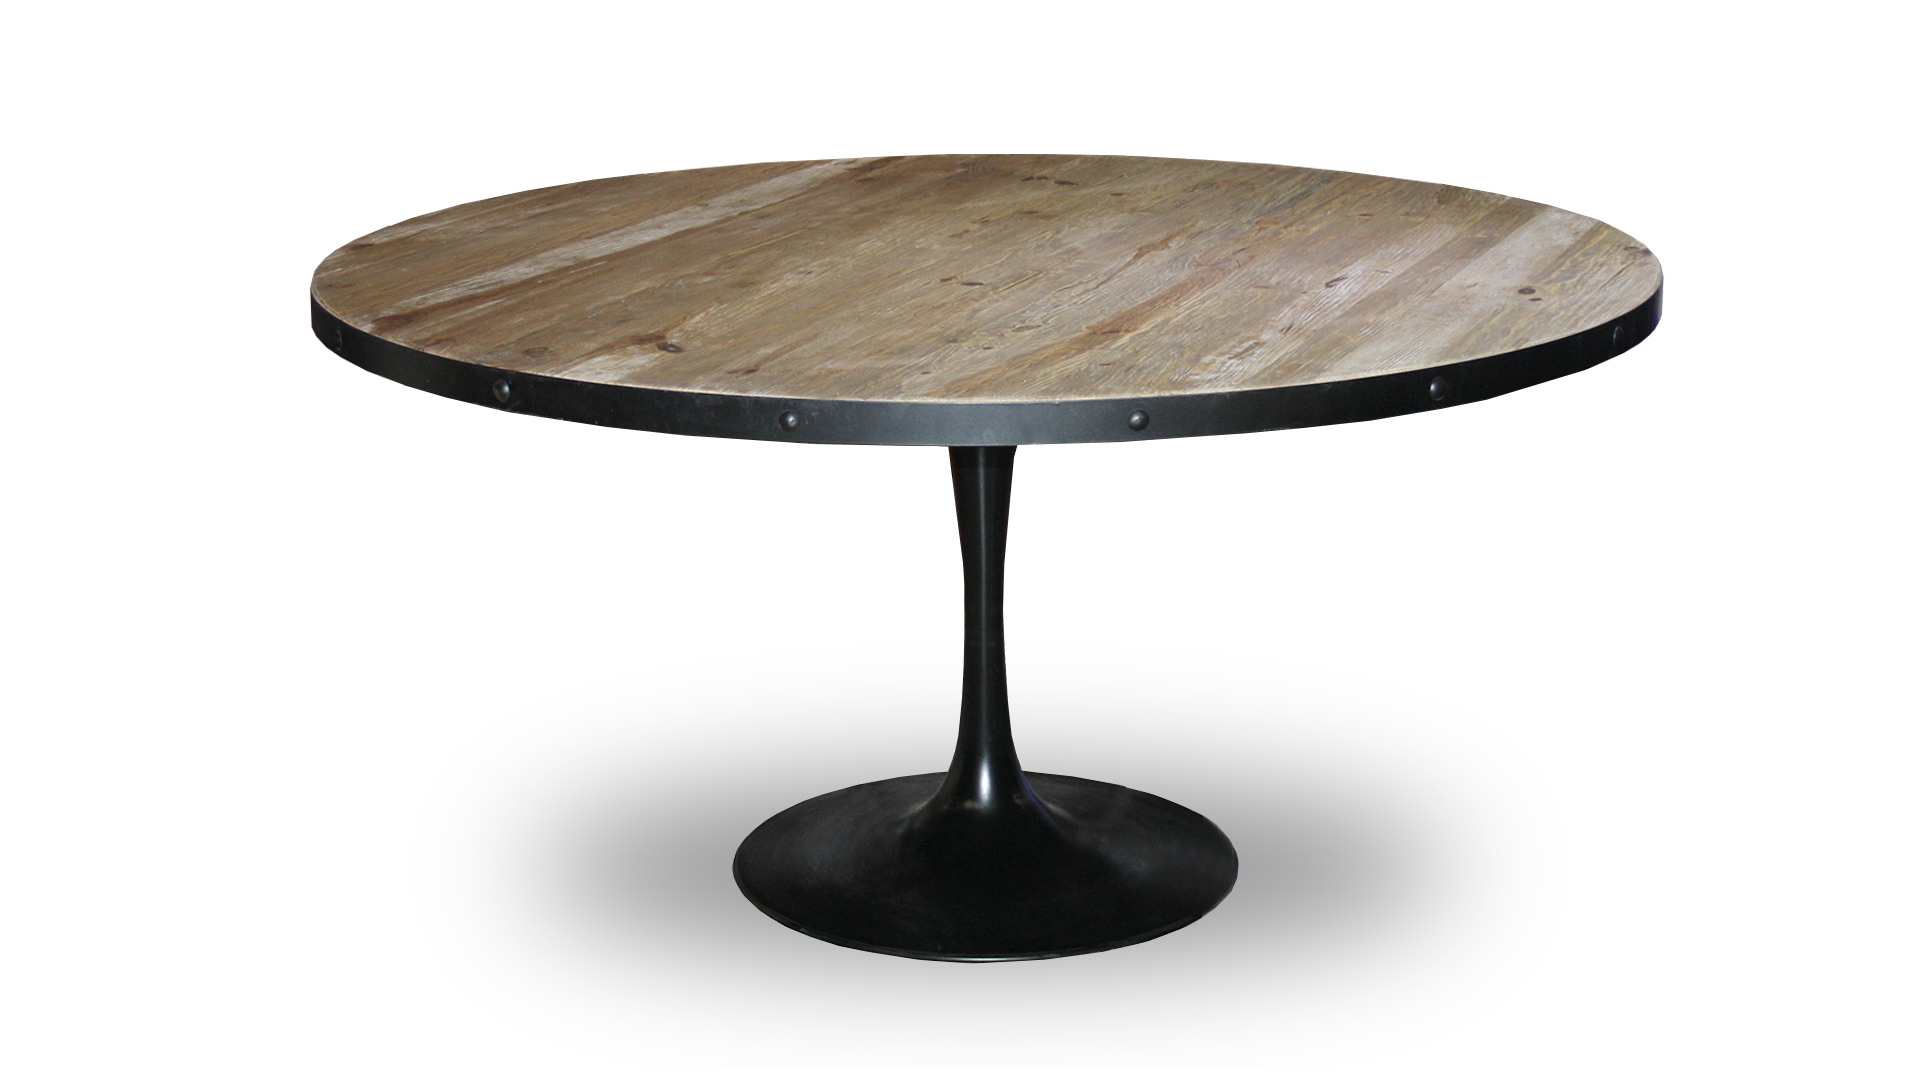 Le blog mobiliermoss cr er un coin repas convivial for Salle a manger table ronde pied central